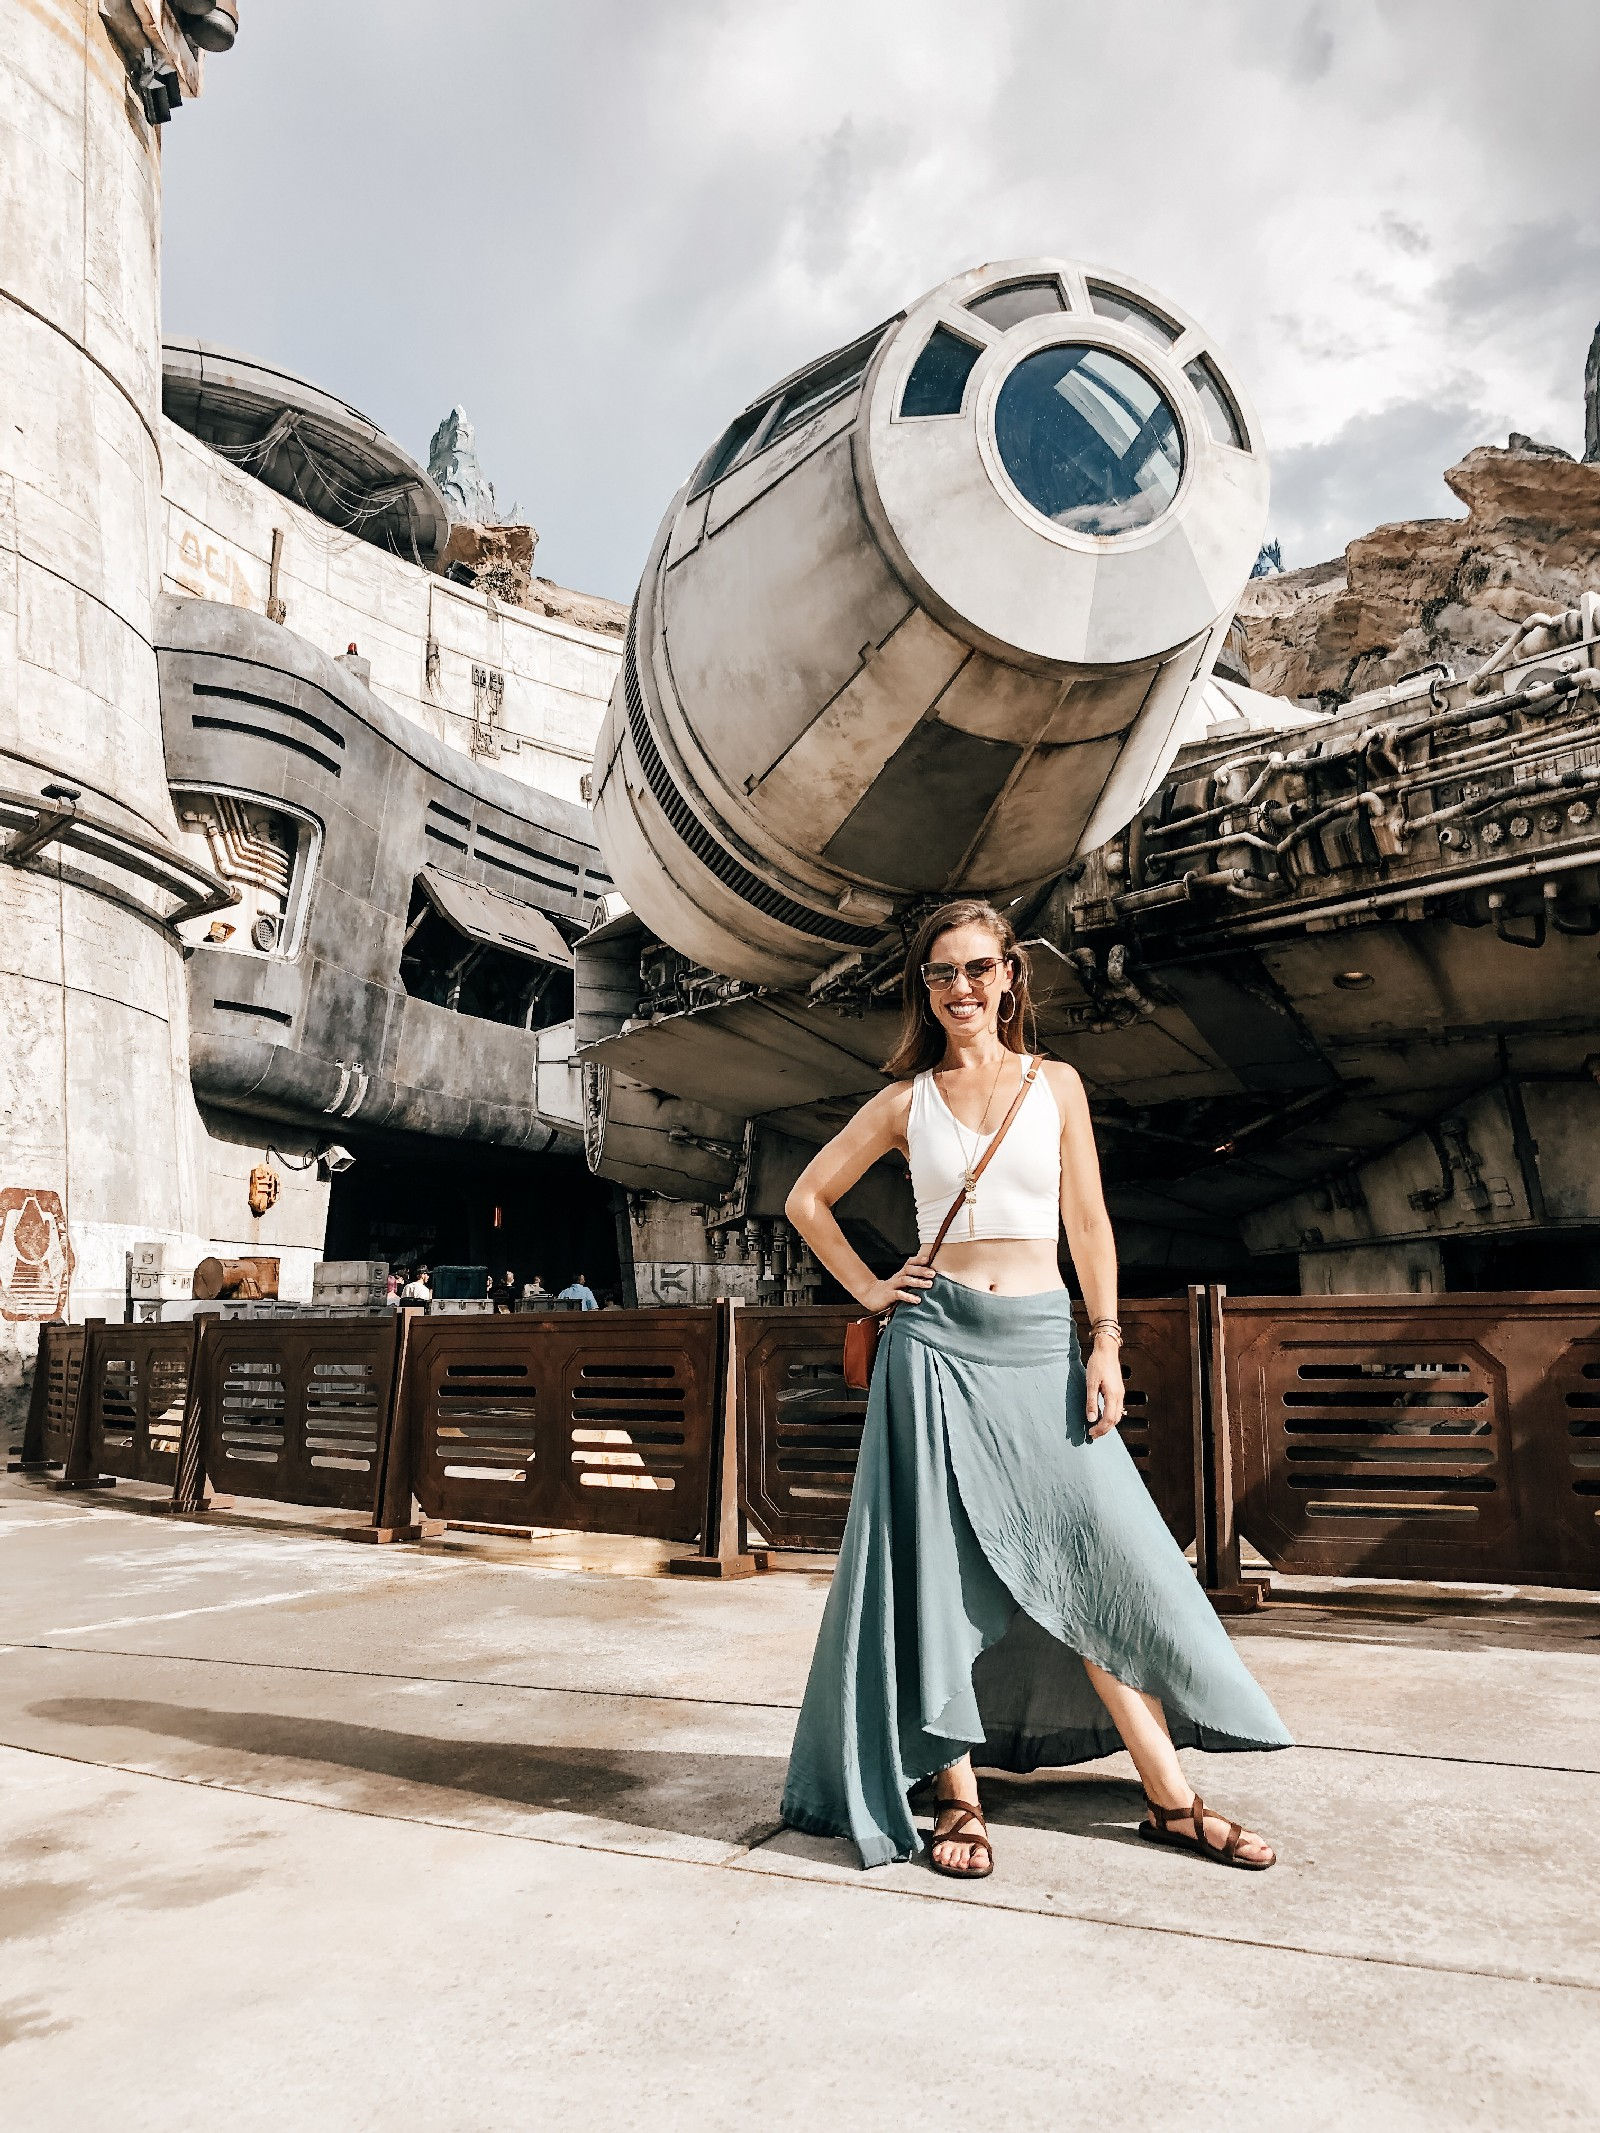 Woman in front of Millenium Falcon